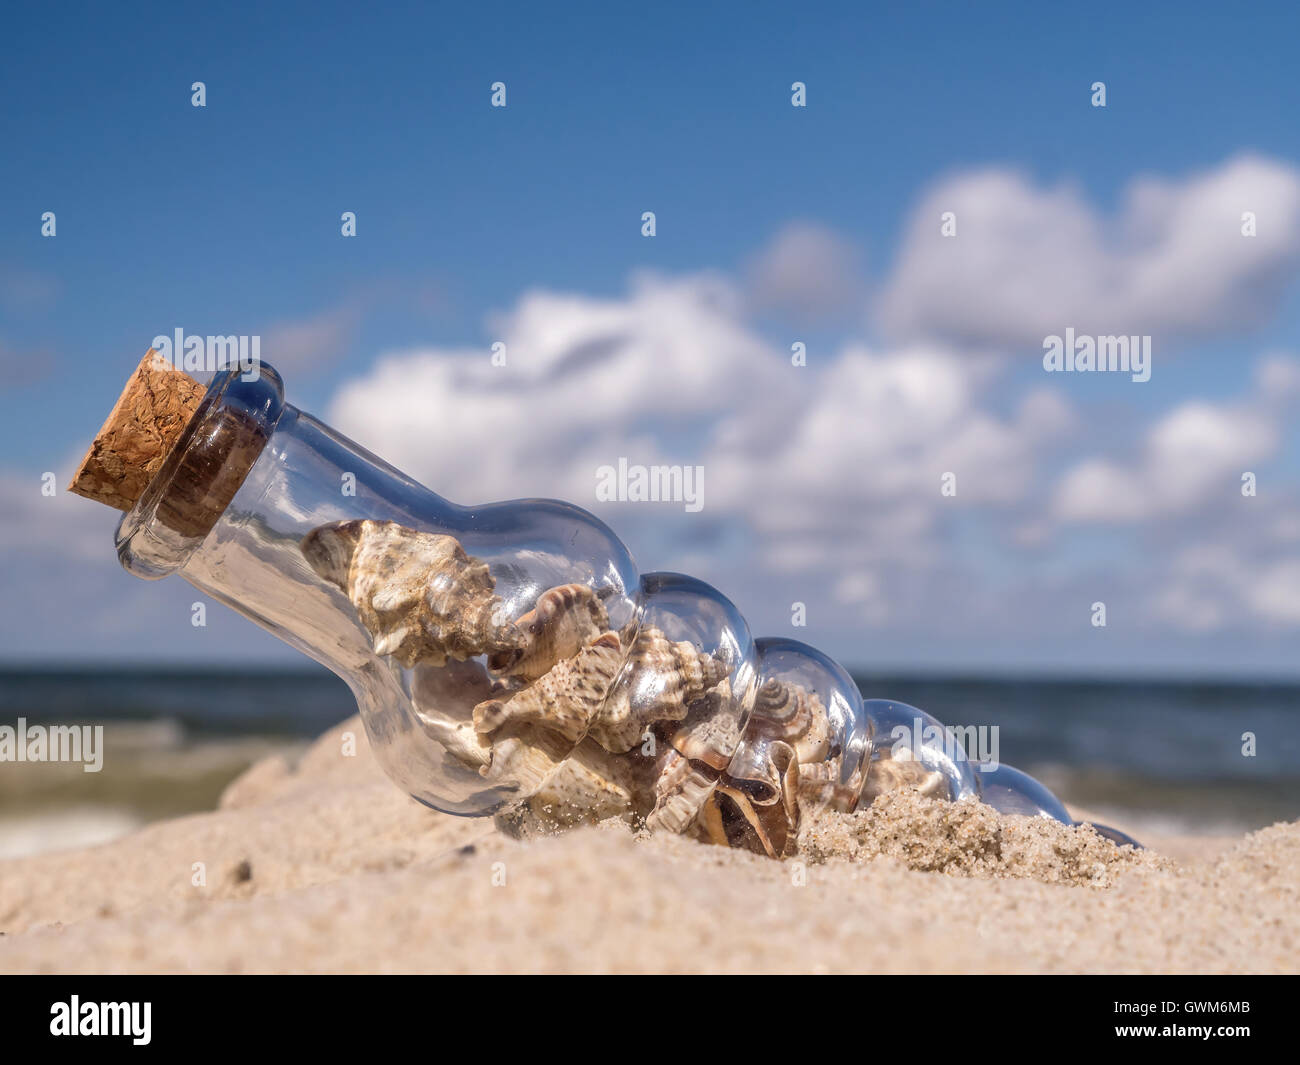 Corked bottle with seashells stuck in the sand on the beach - Stock Image